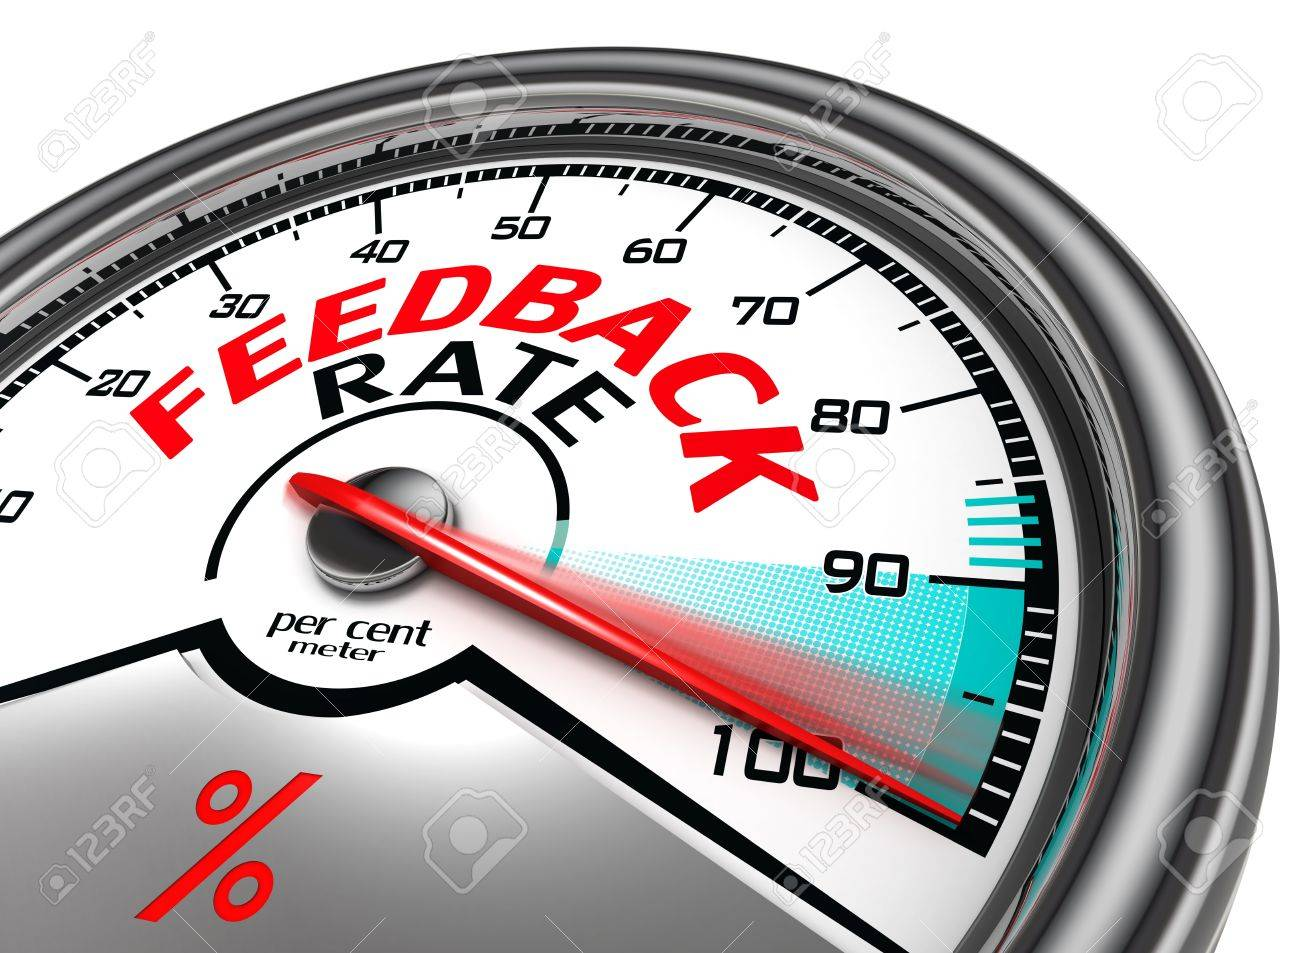 feedback rate meter indicate hundred per cent, isolated on white background Stock Photo - 19912677